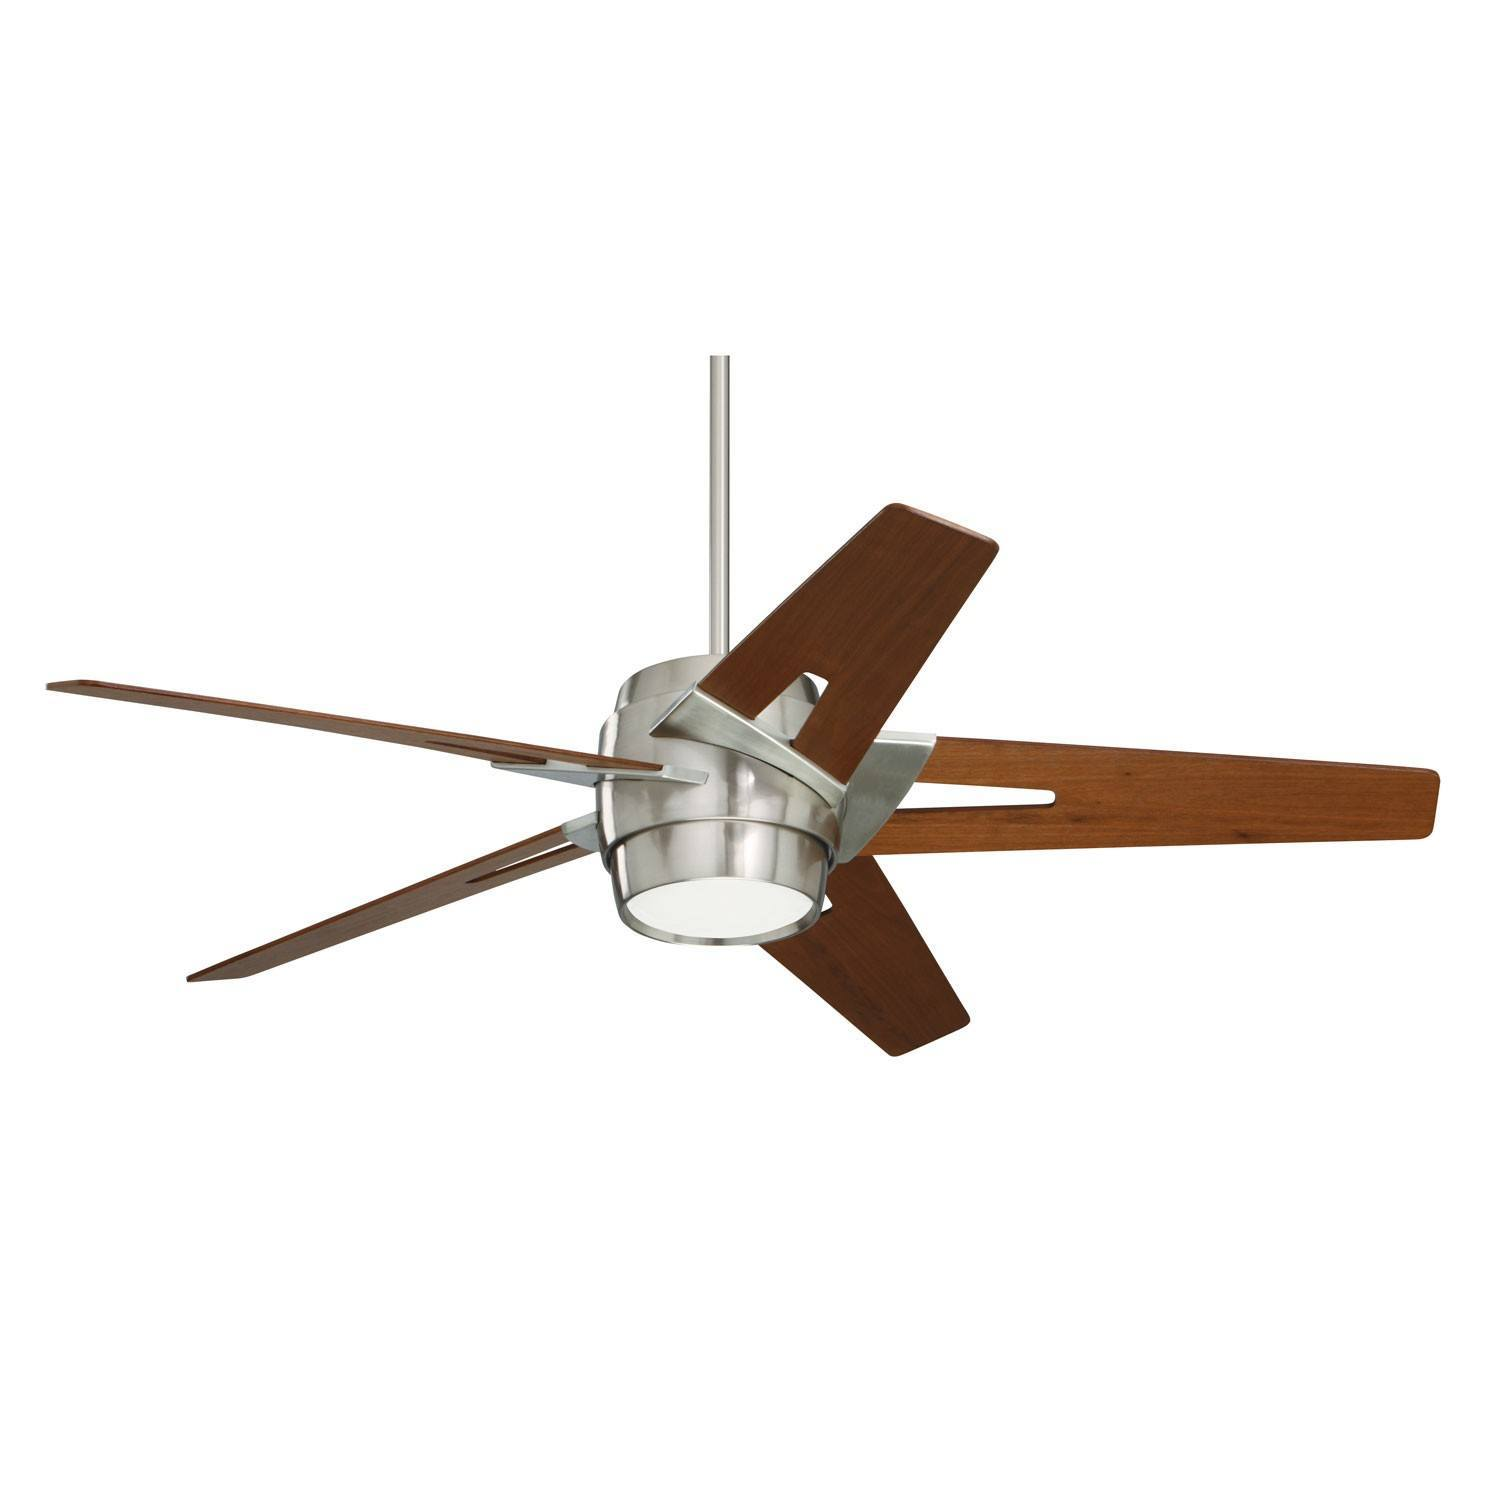 Luxe Eco Ceiling Fan from Emerson Fans | YLighting